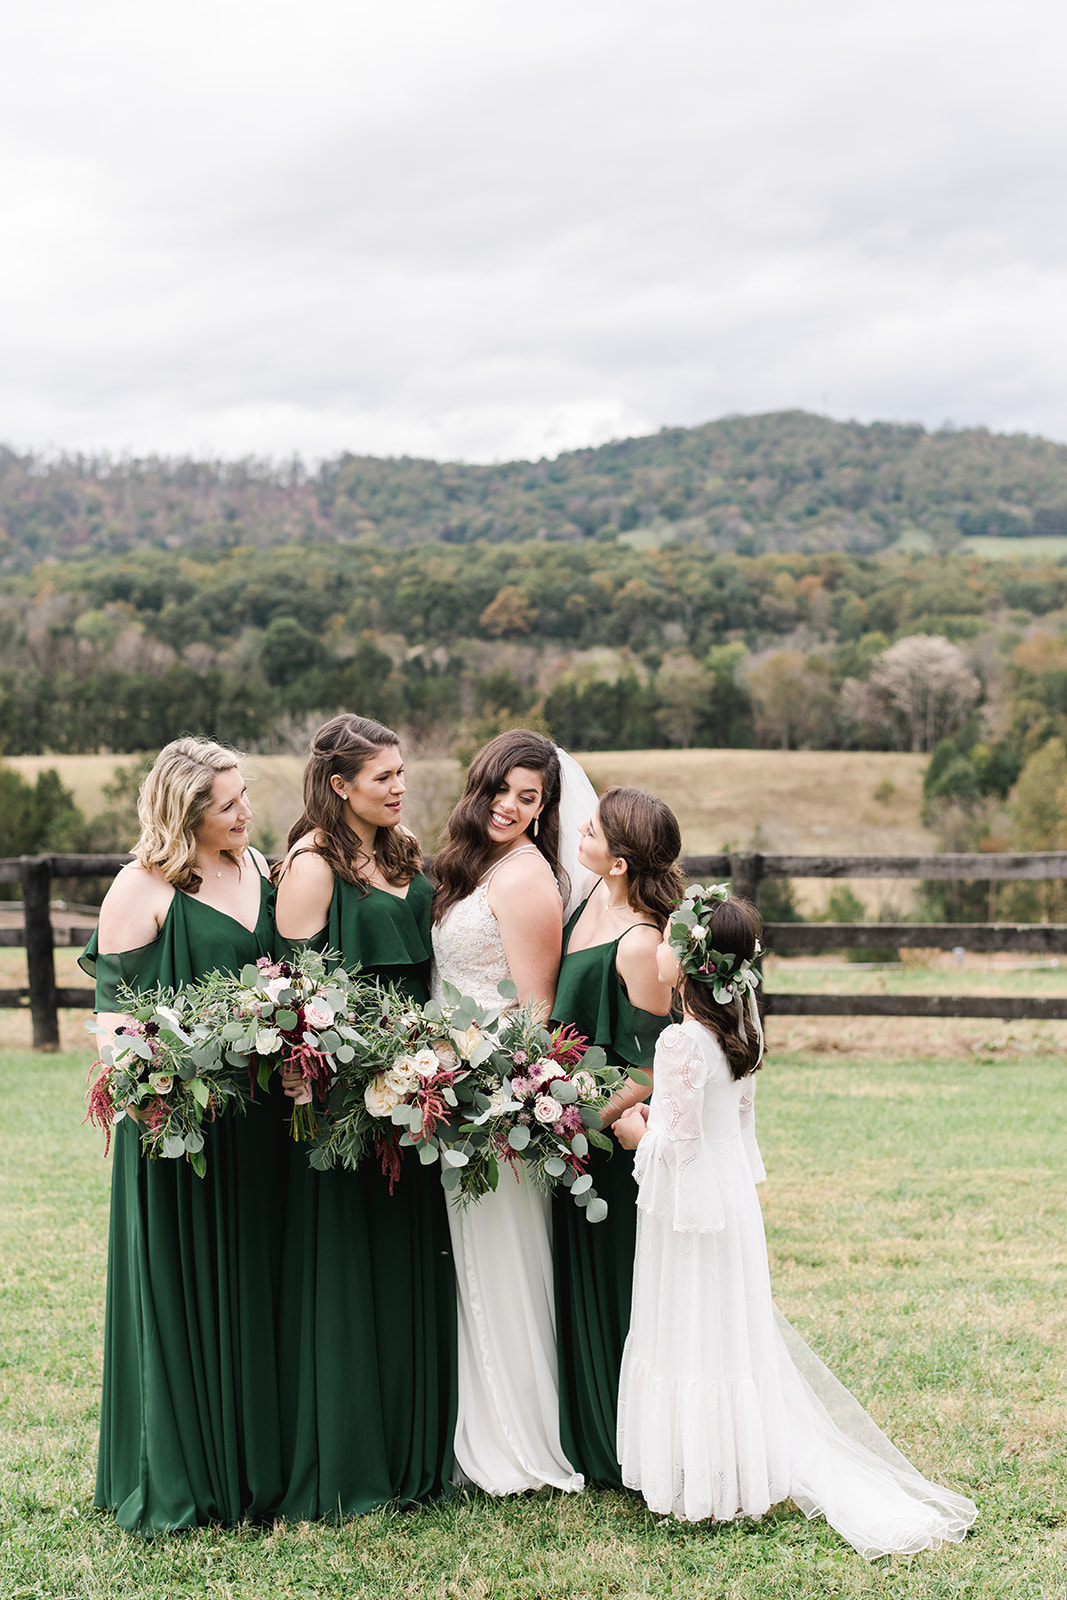 Sarah and Taylor 3 Cats Photo Blue Ridge Mountain Wedding Photographer 61538 copy